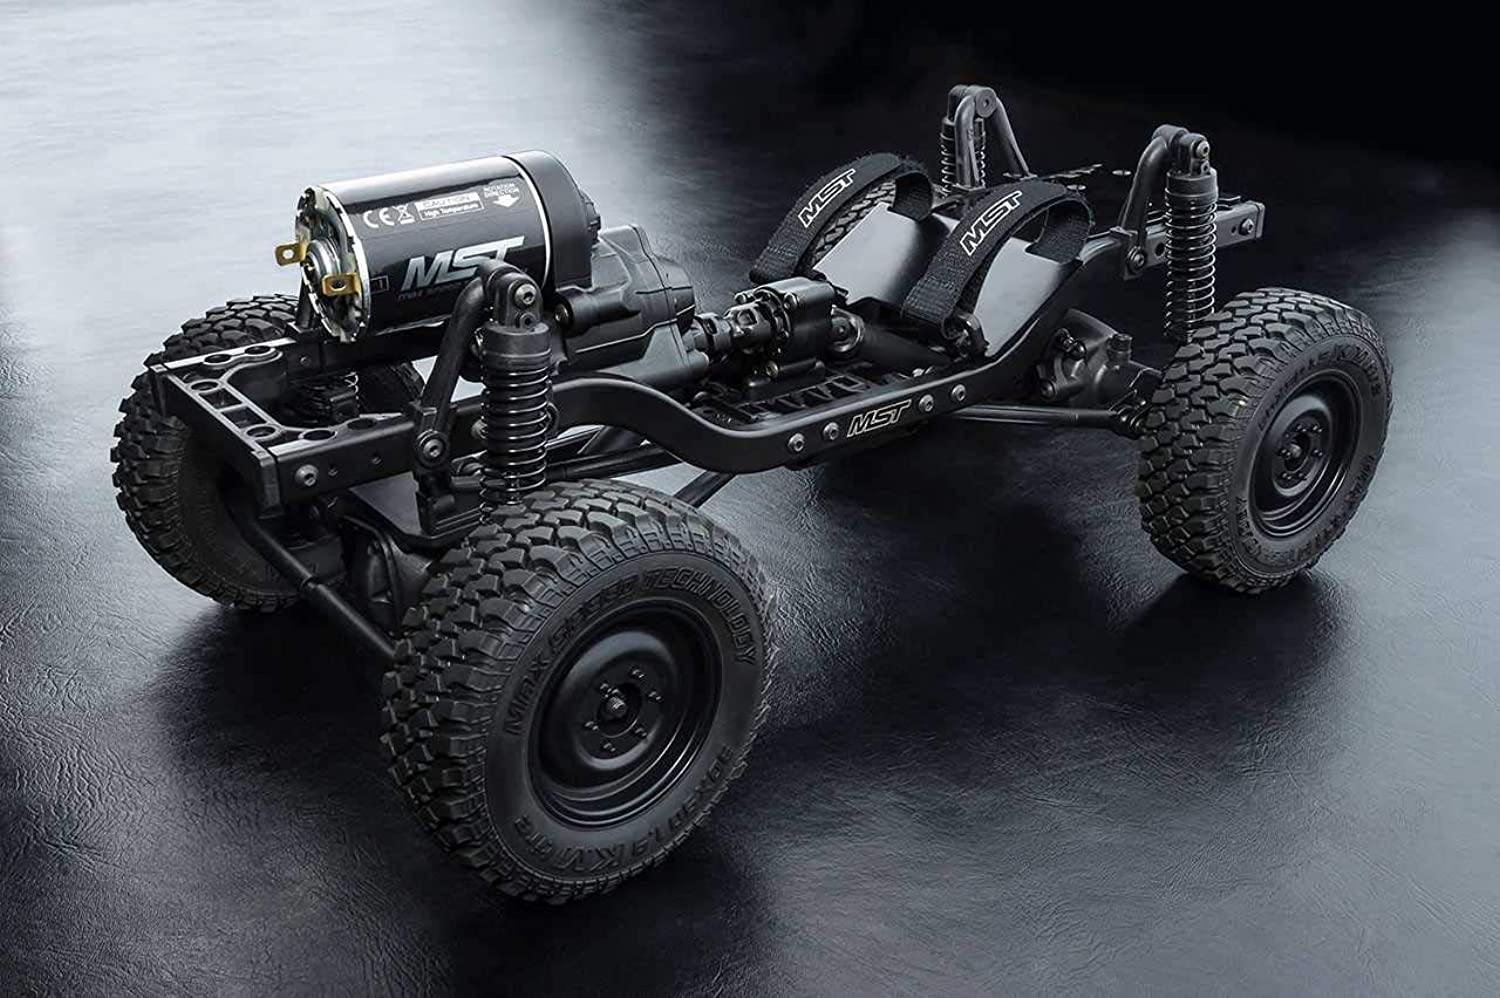 Max Speed Technology CFX 1 10 4WD High Performance Off-Road Car KIT